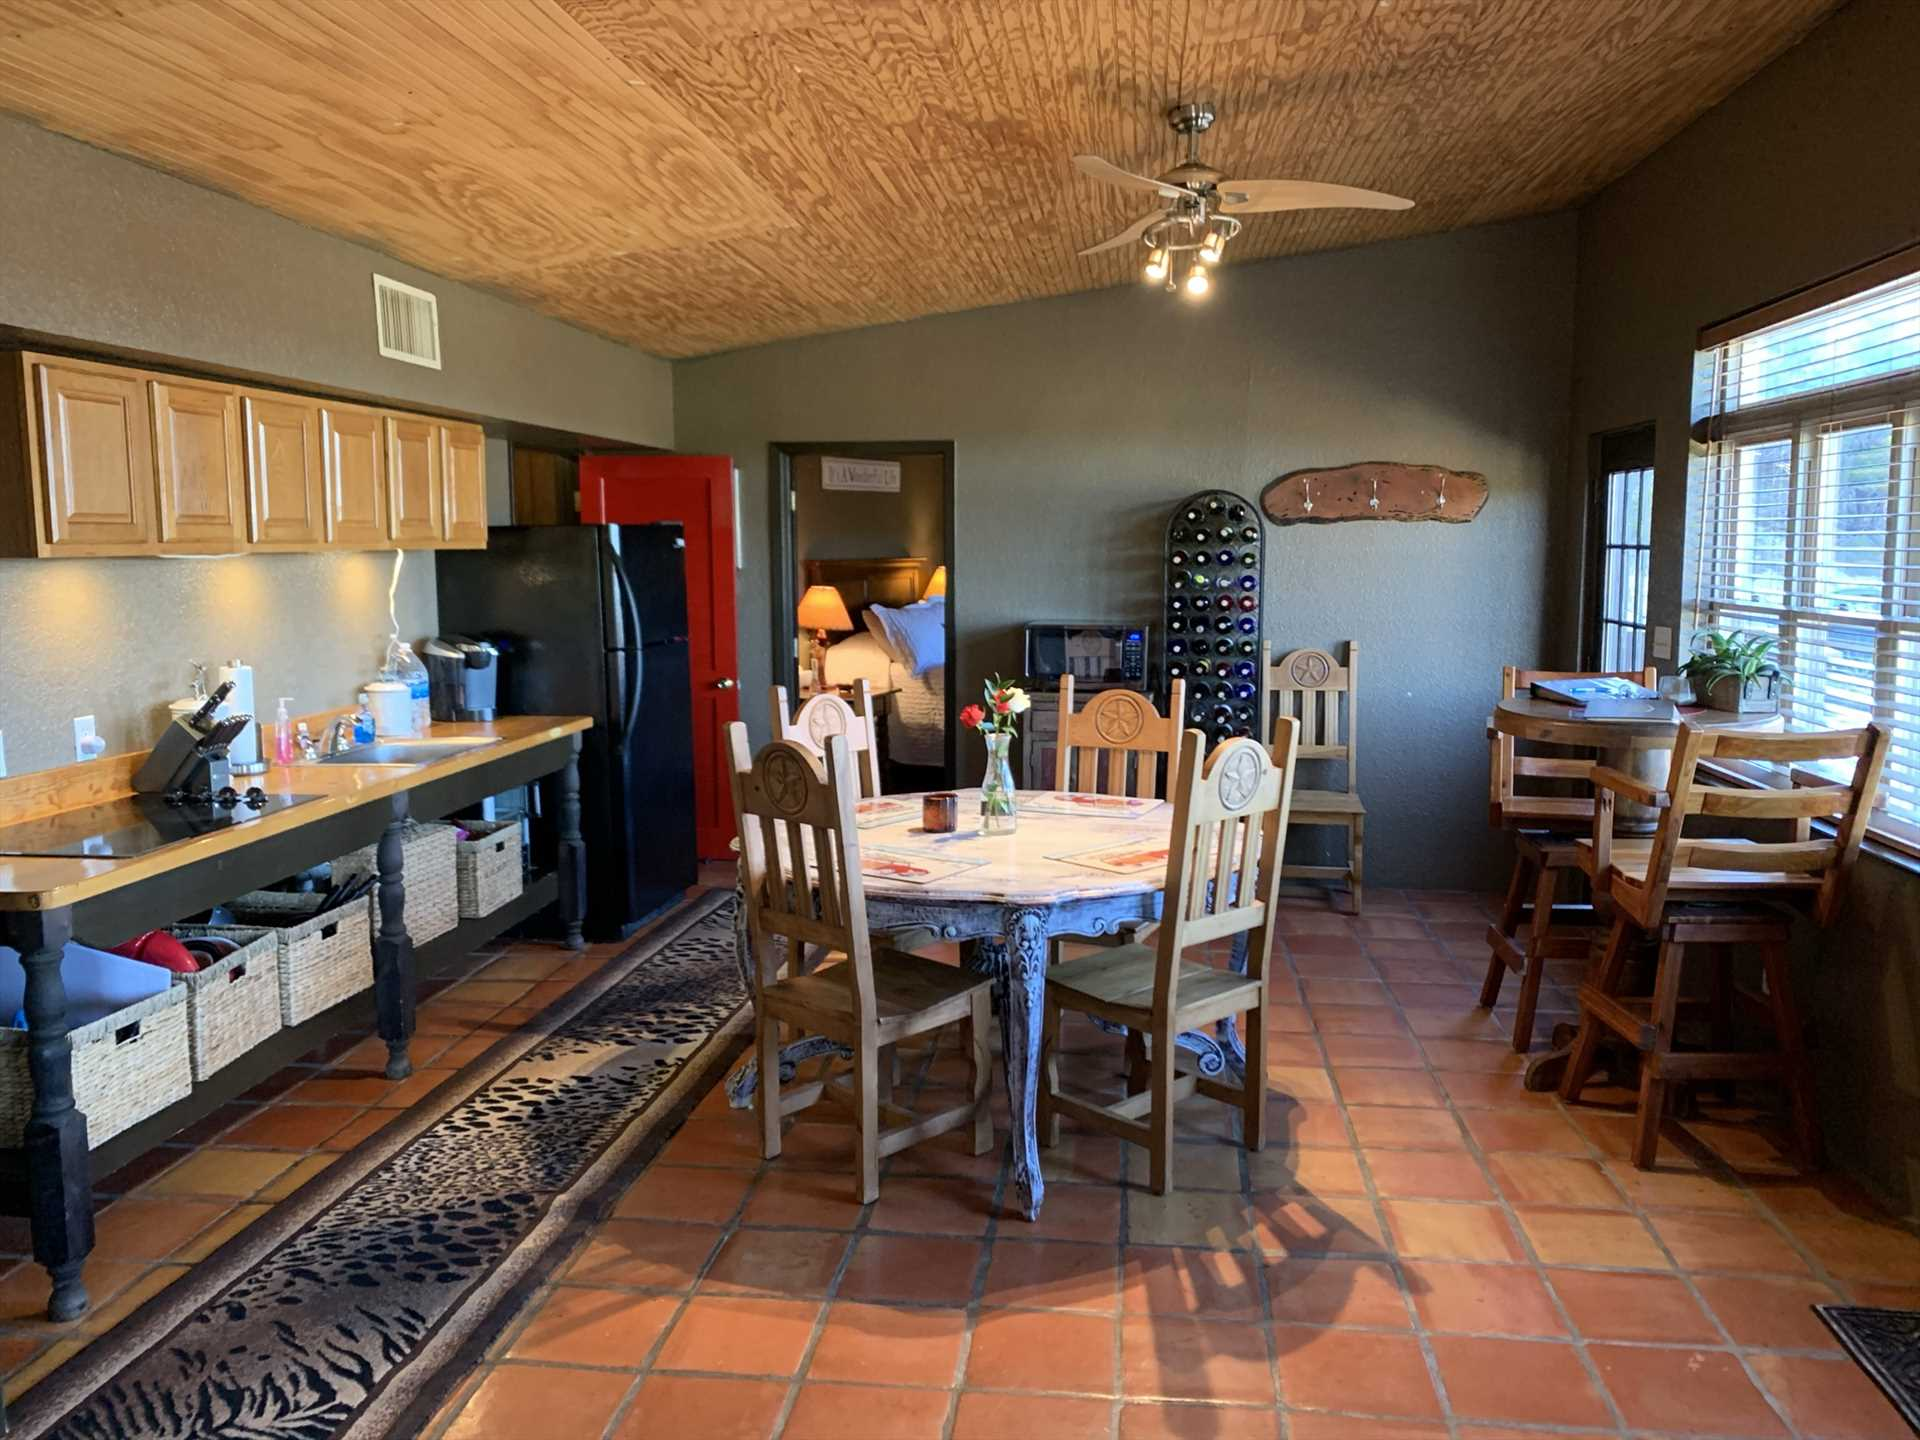 The kitchen, dining, and living areas are wide open, so no one will feel